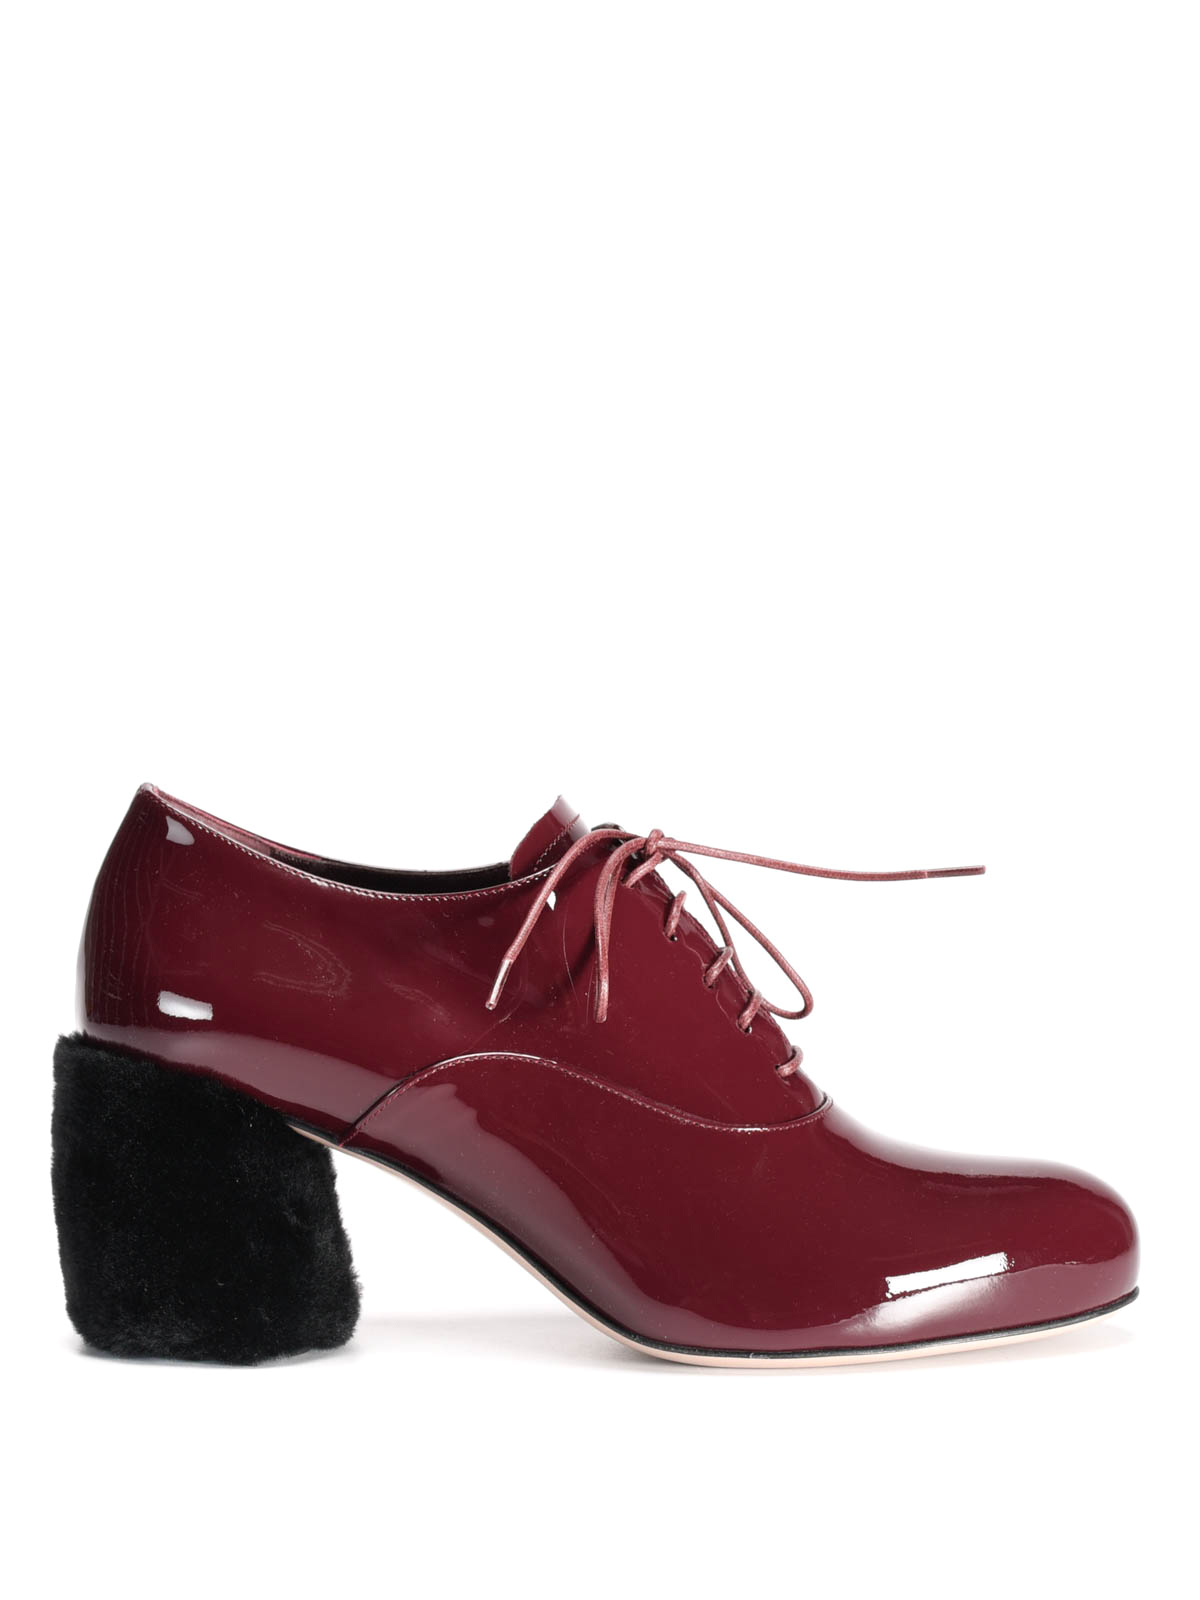 Miu Miu - Fur detailed patent leather shoes - lace-ups shoes ... 64b6649277a3